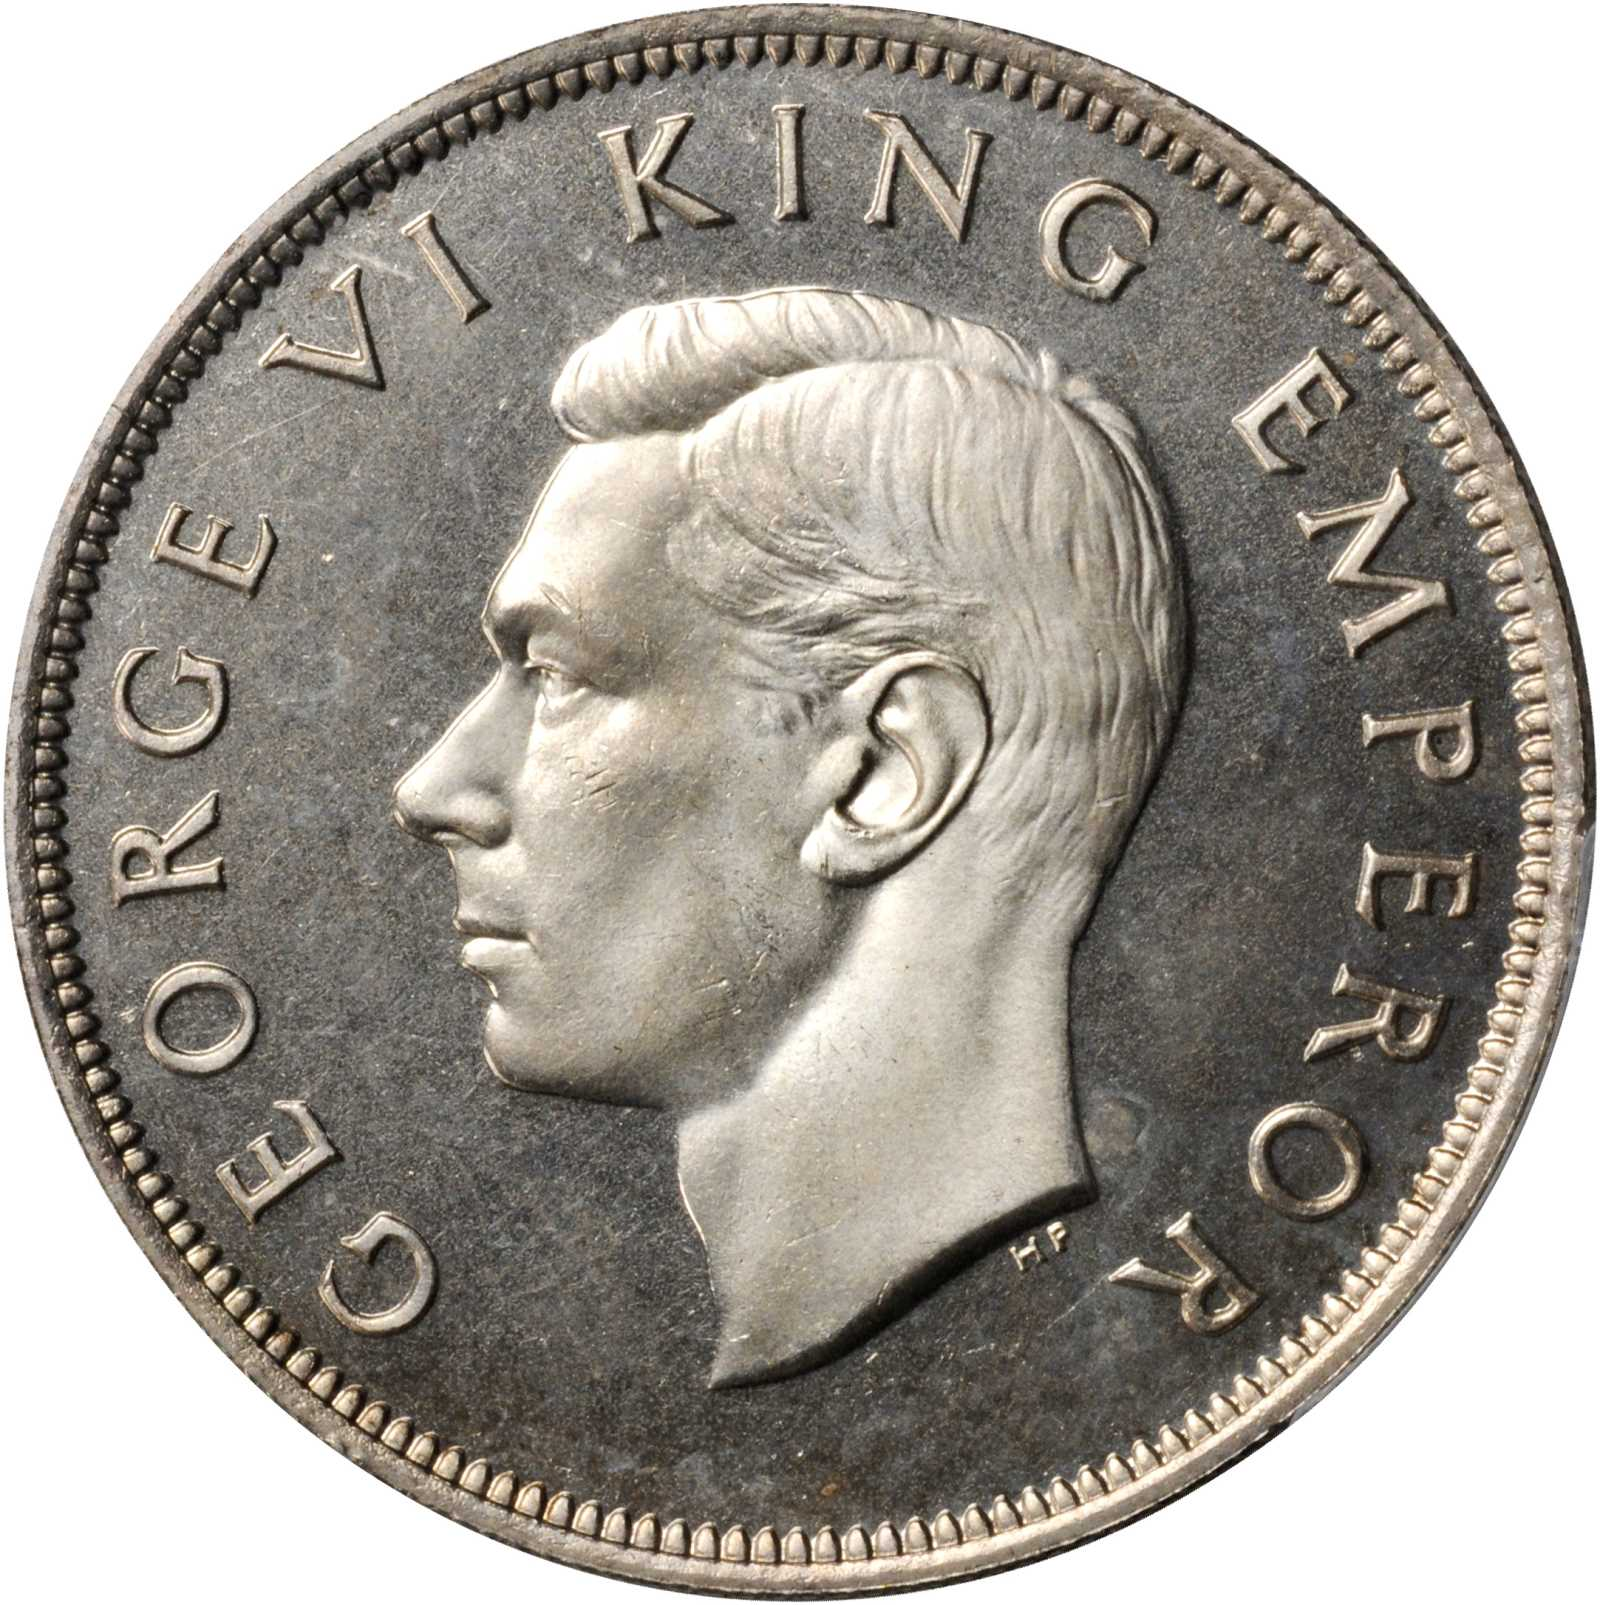 Half Crown 1940 (Centennial): Photo New Zealand 1940 1/2 crown